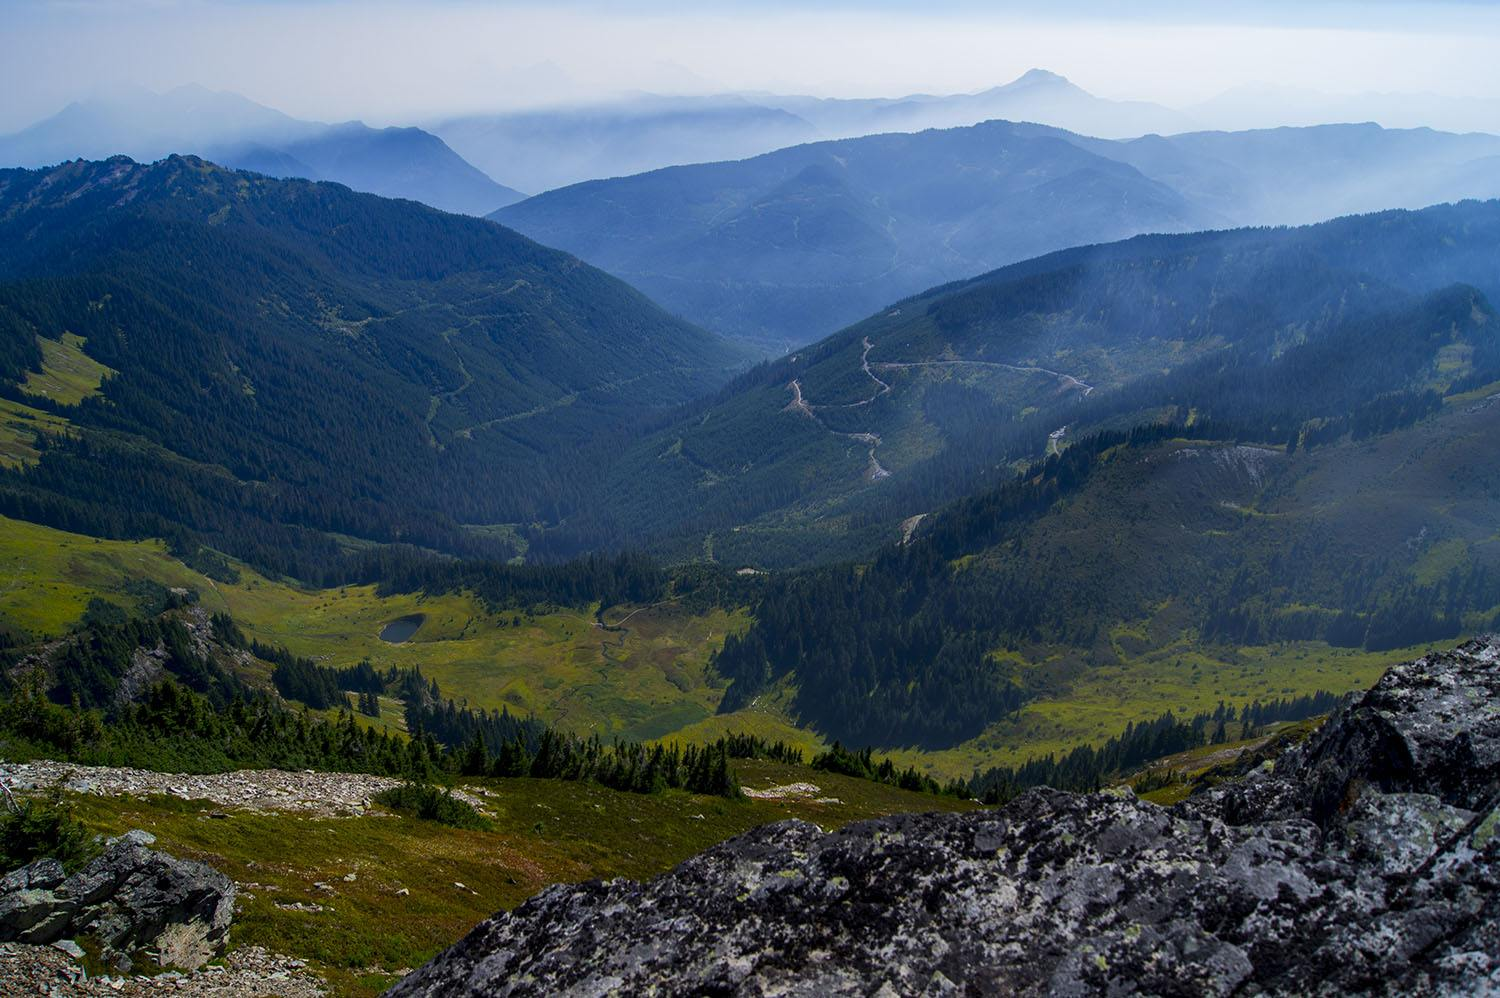 View from the top of Mount Cheam (Ethan Sztuhar/Flickr)